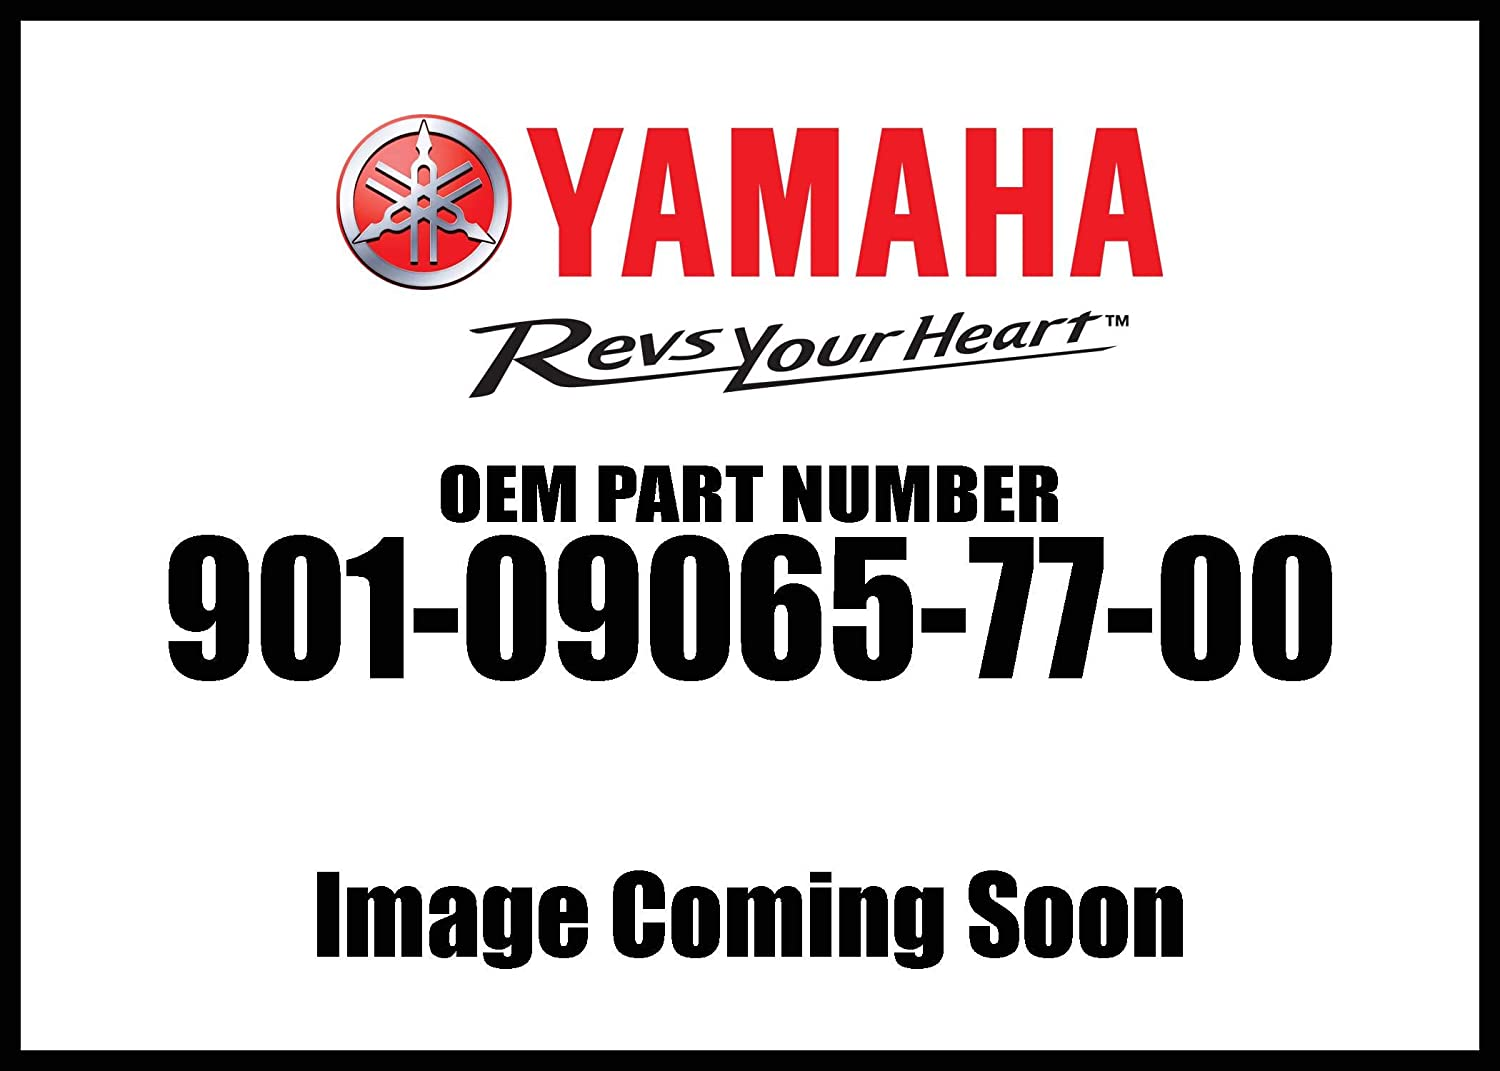 Yamaha 90109-06577-00 Bolt; 901090657700 Made by Yamaha